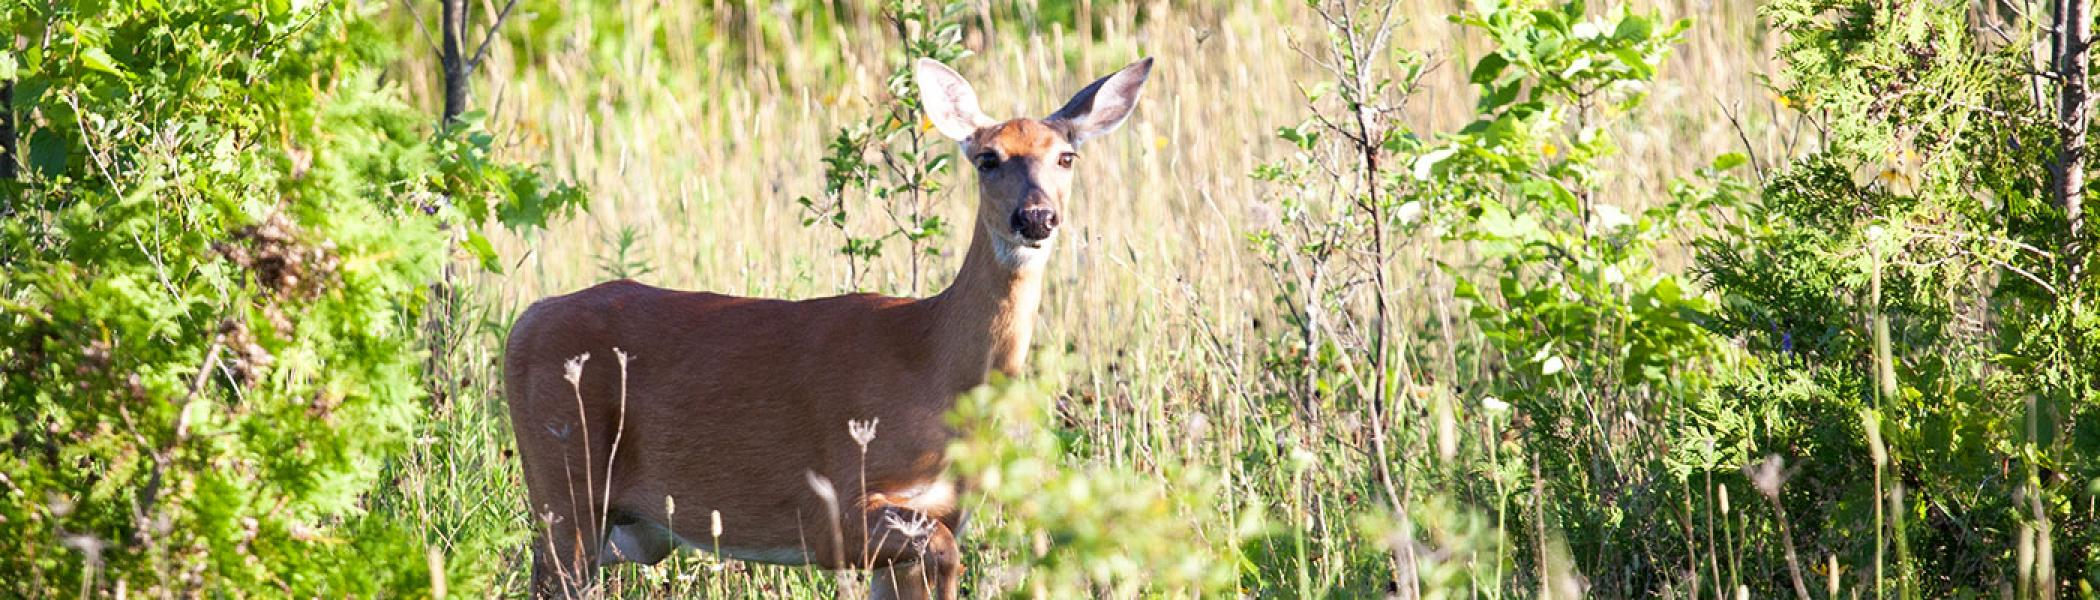 image of a deer staring into the bush in Trent's nature areas